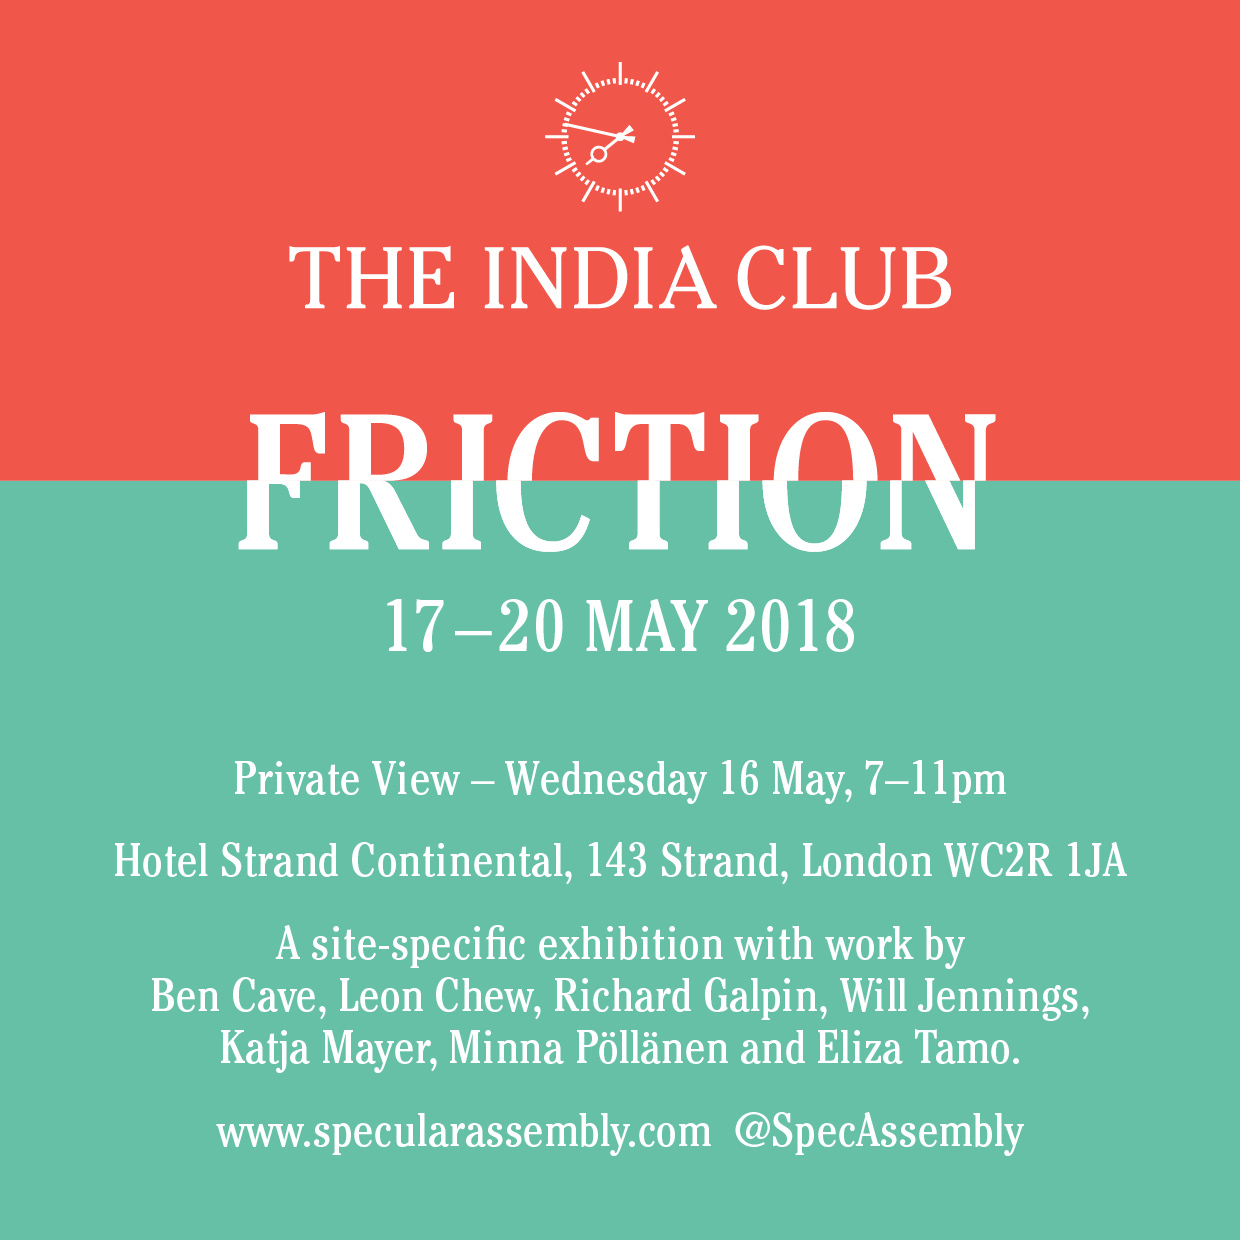 The India Club 'Friction'